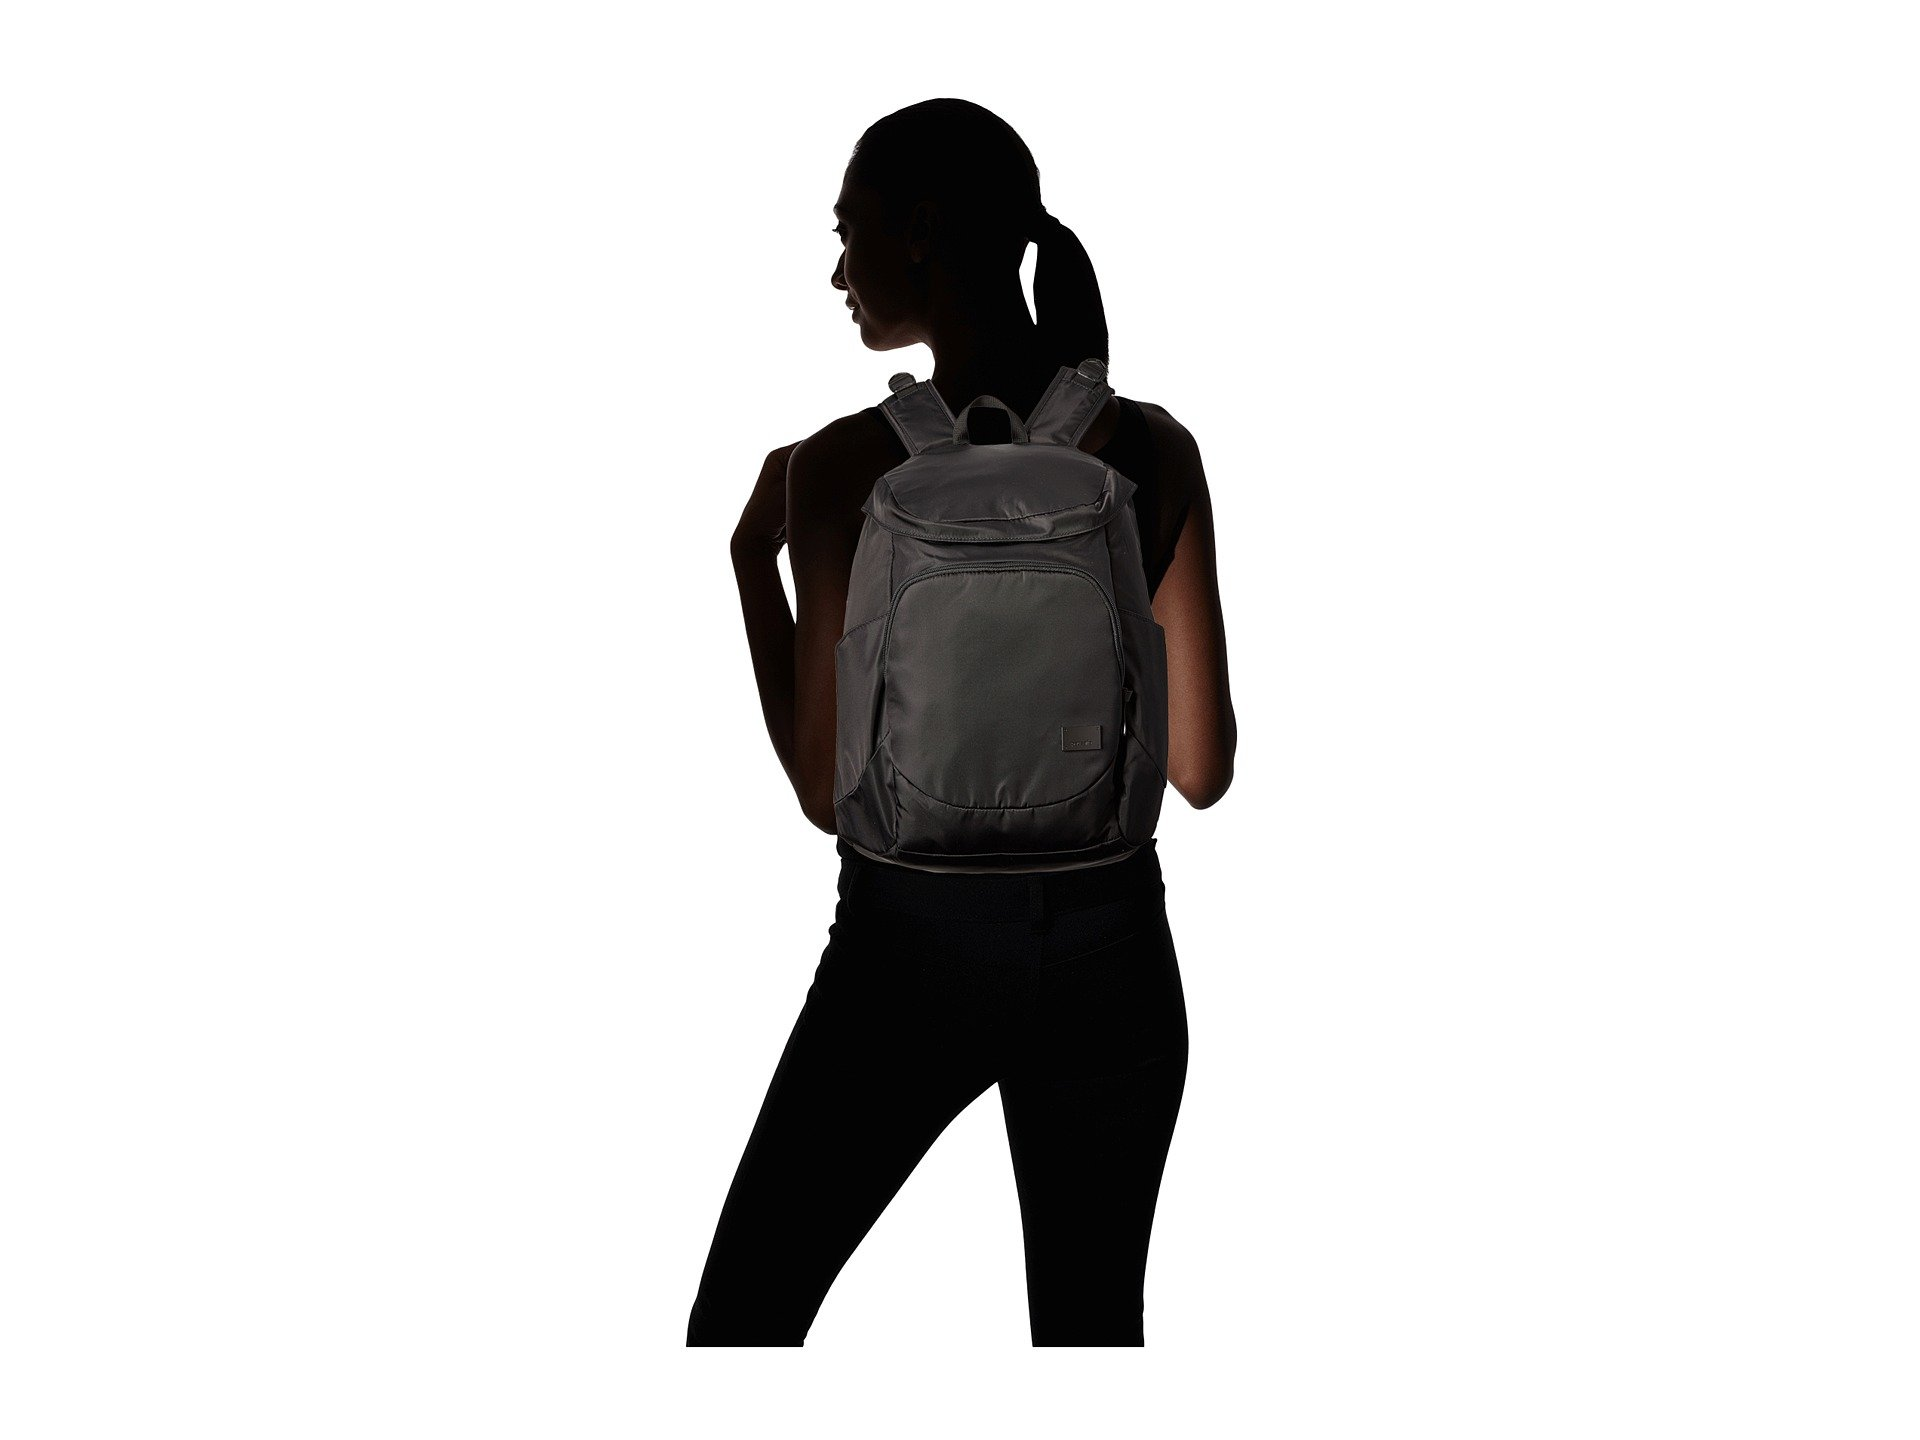 Black Backpack Cs350 Backpack Cs350 Citysafe Pacsafe Pacsafe Citysafe Fq8xpH1